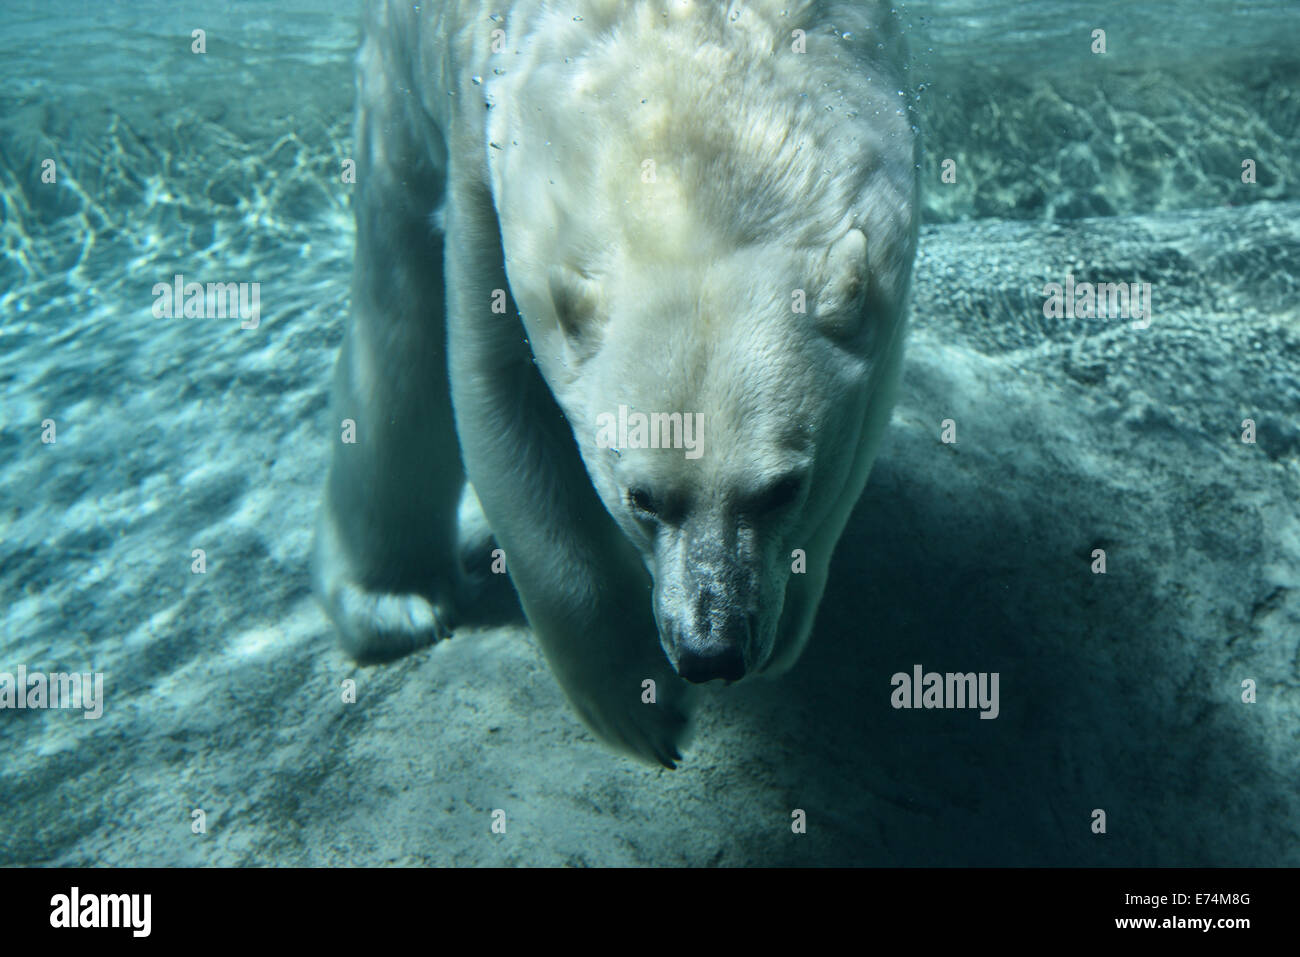 Polar bear diving holding breath underwater at blue pool of Toronto Zoo - Stock Image